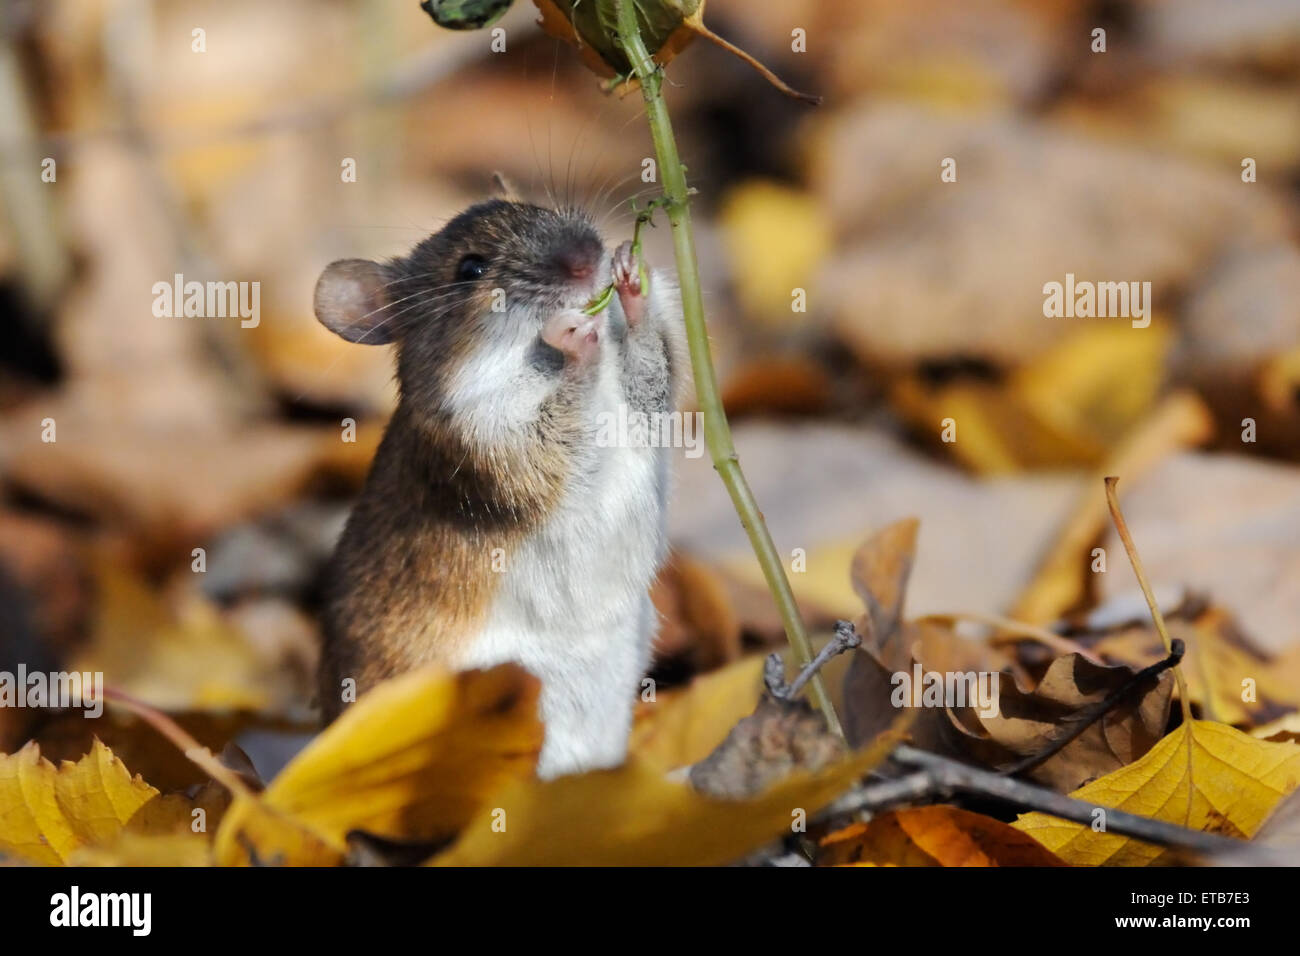 Striped Field Mouse eats Touch-me-not plant seeds - Stock Image